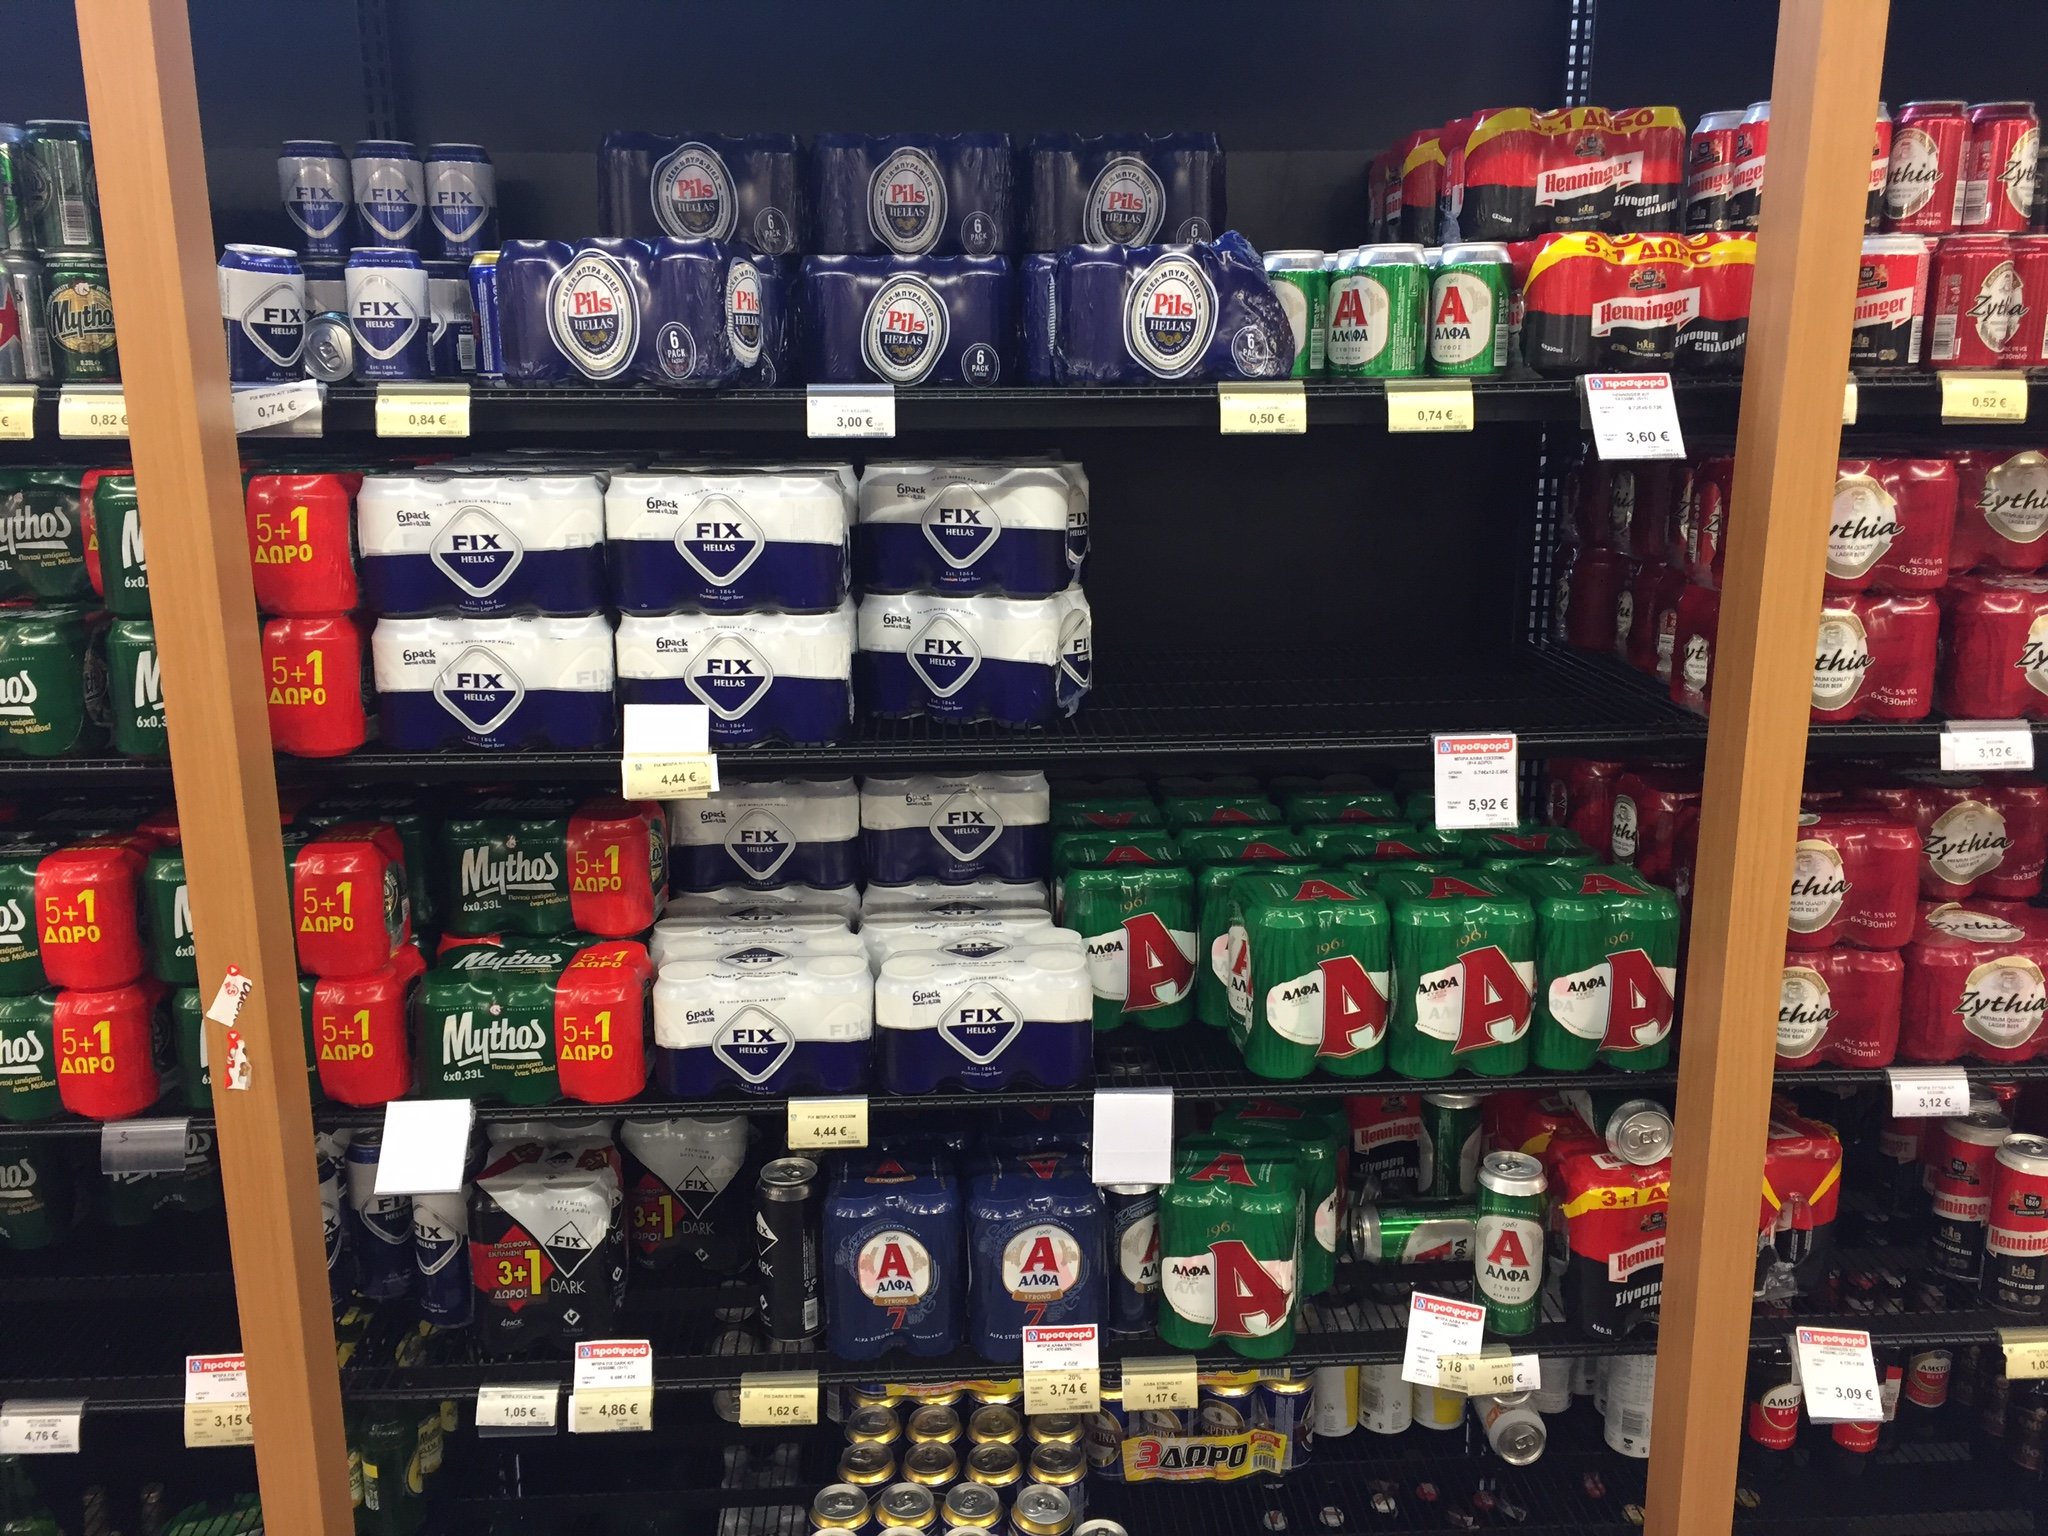 Fix Lager, Mythos, Alfa, Zythia, Henninger, Amstel...all terribly made light lagers. Interestingly, just like most AB products, they've been terribly made for a long time (some of them started when AB started) so they must be doing something right.